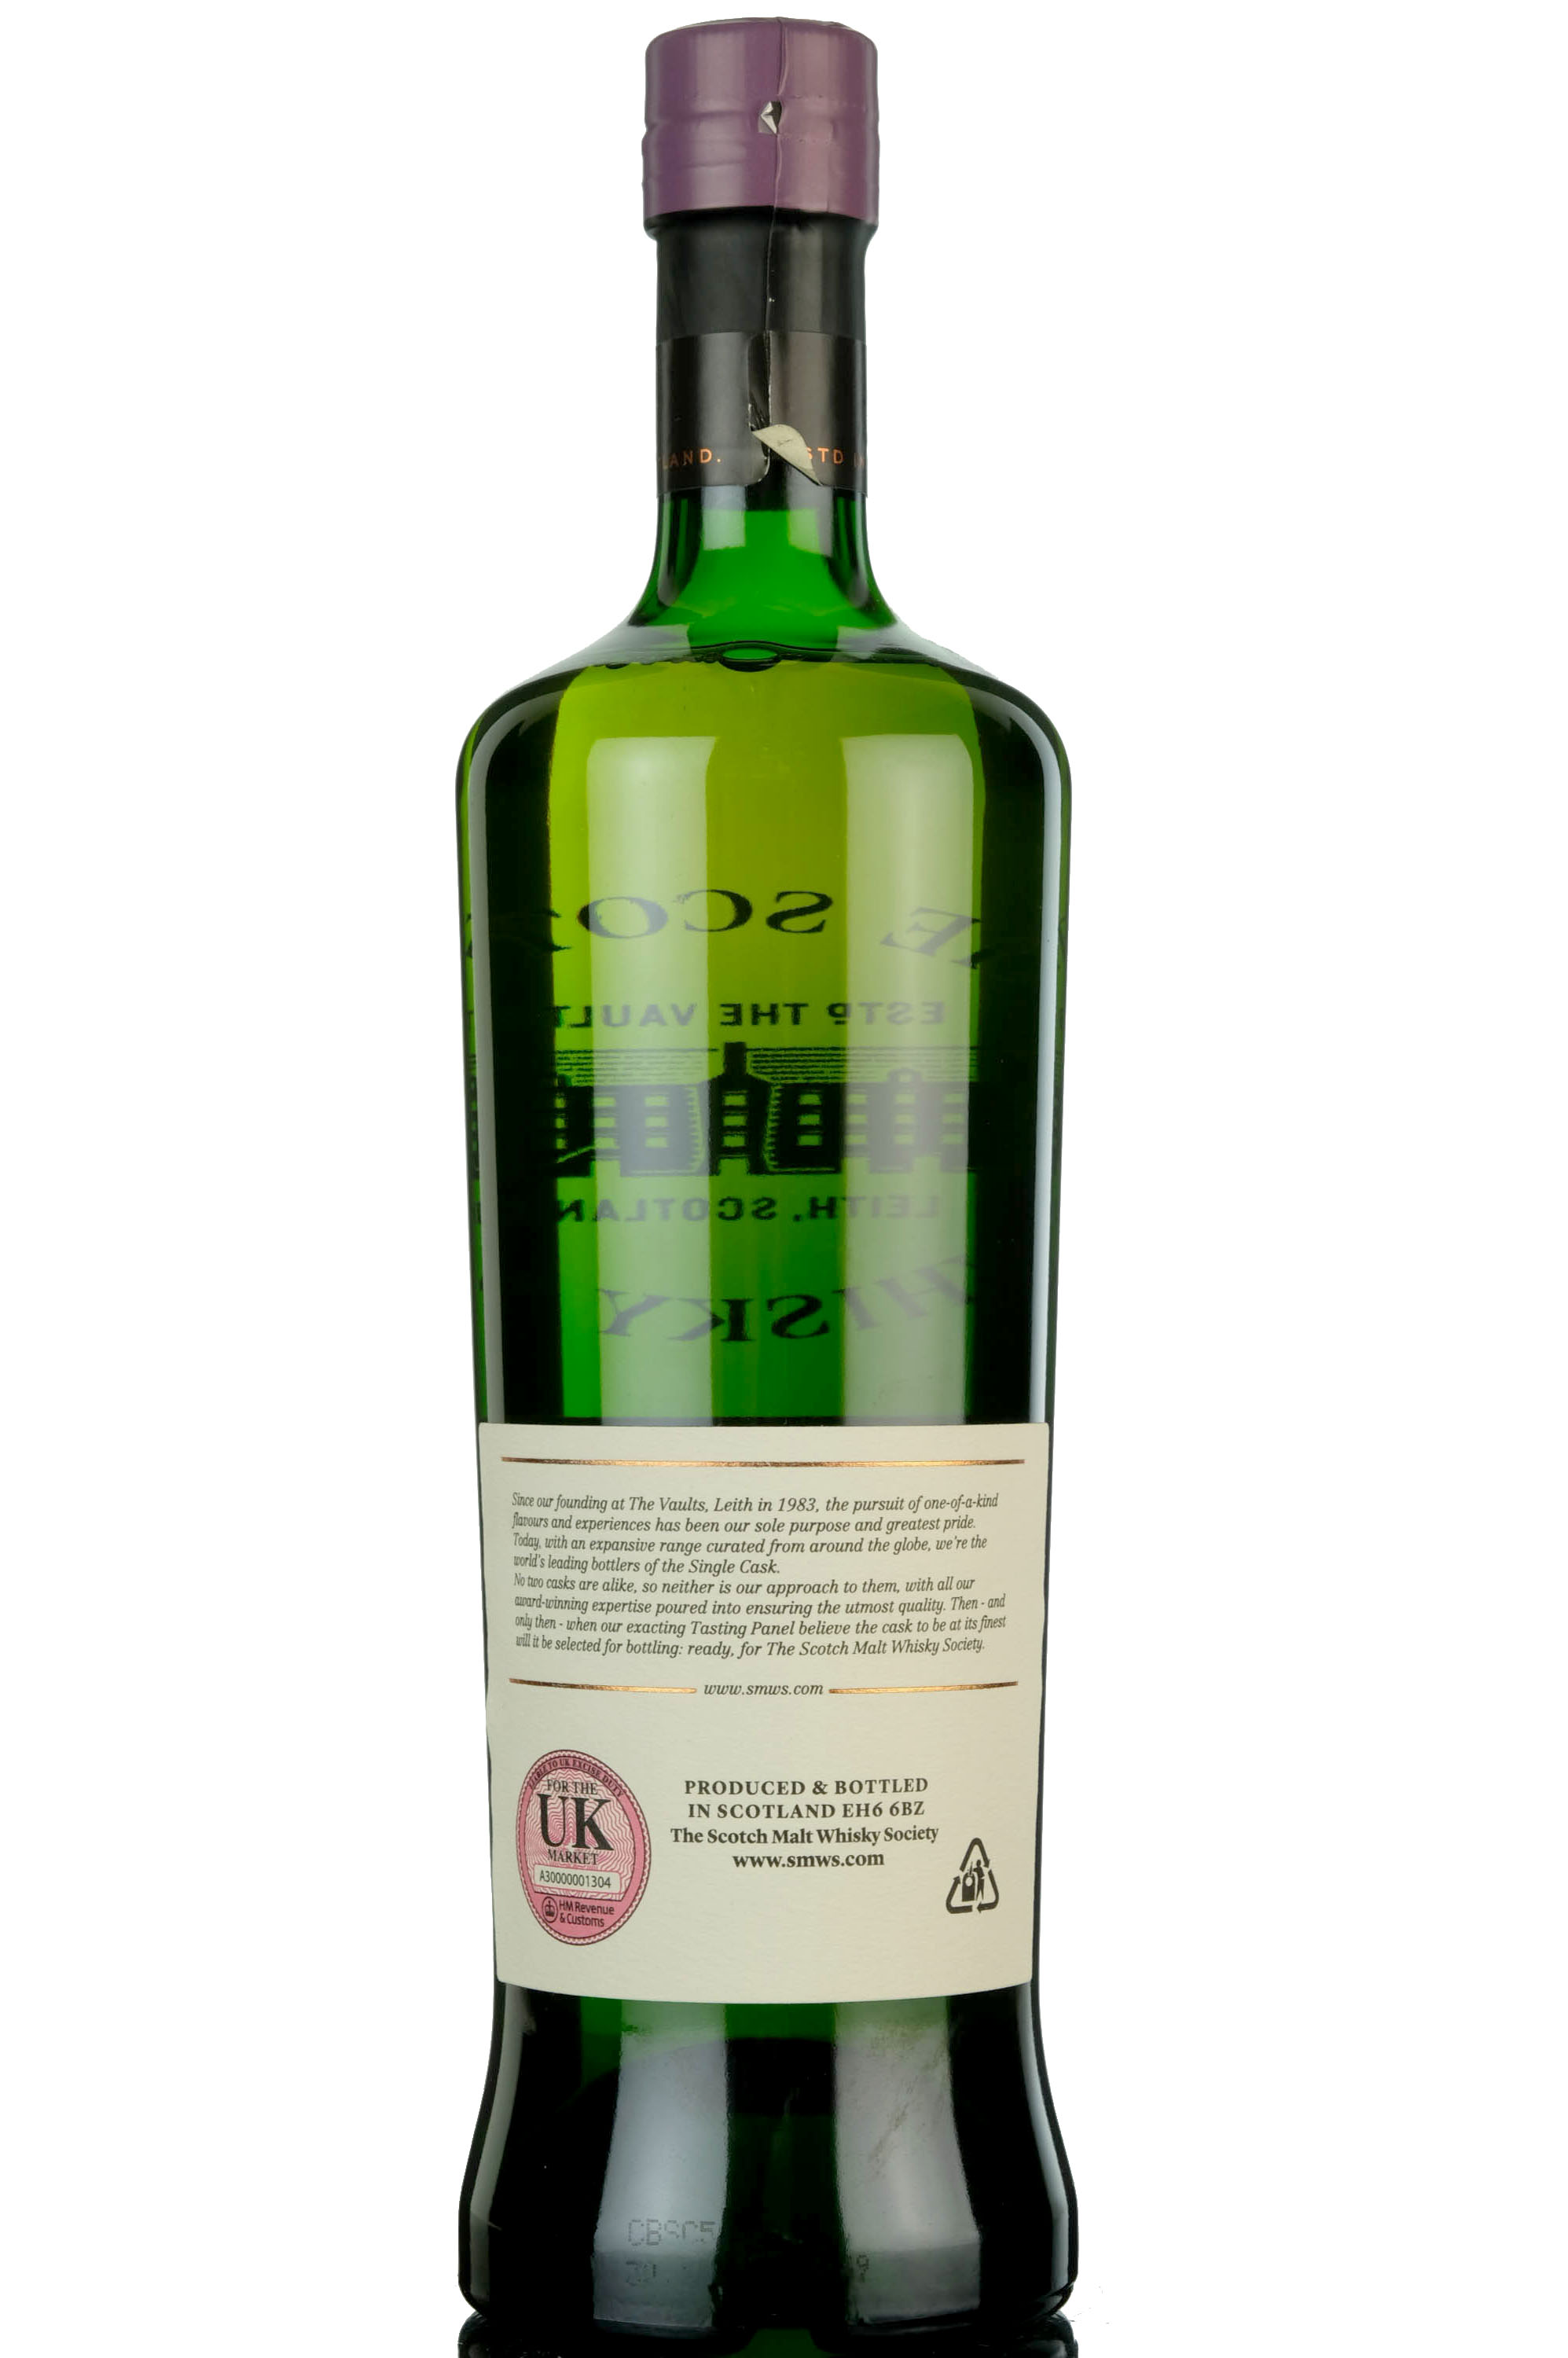 glenlossie 1992 - 24 year old - smws 46.55 - raindrops on a lavender bush